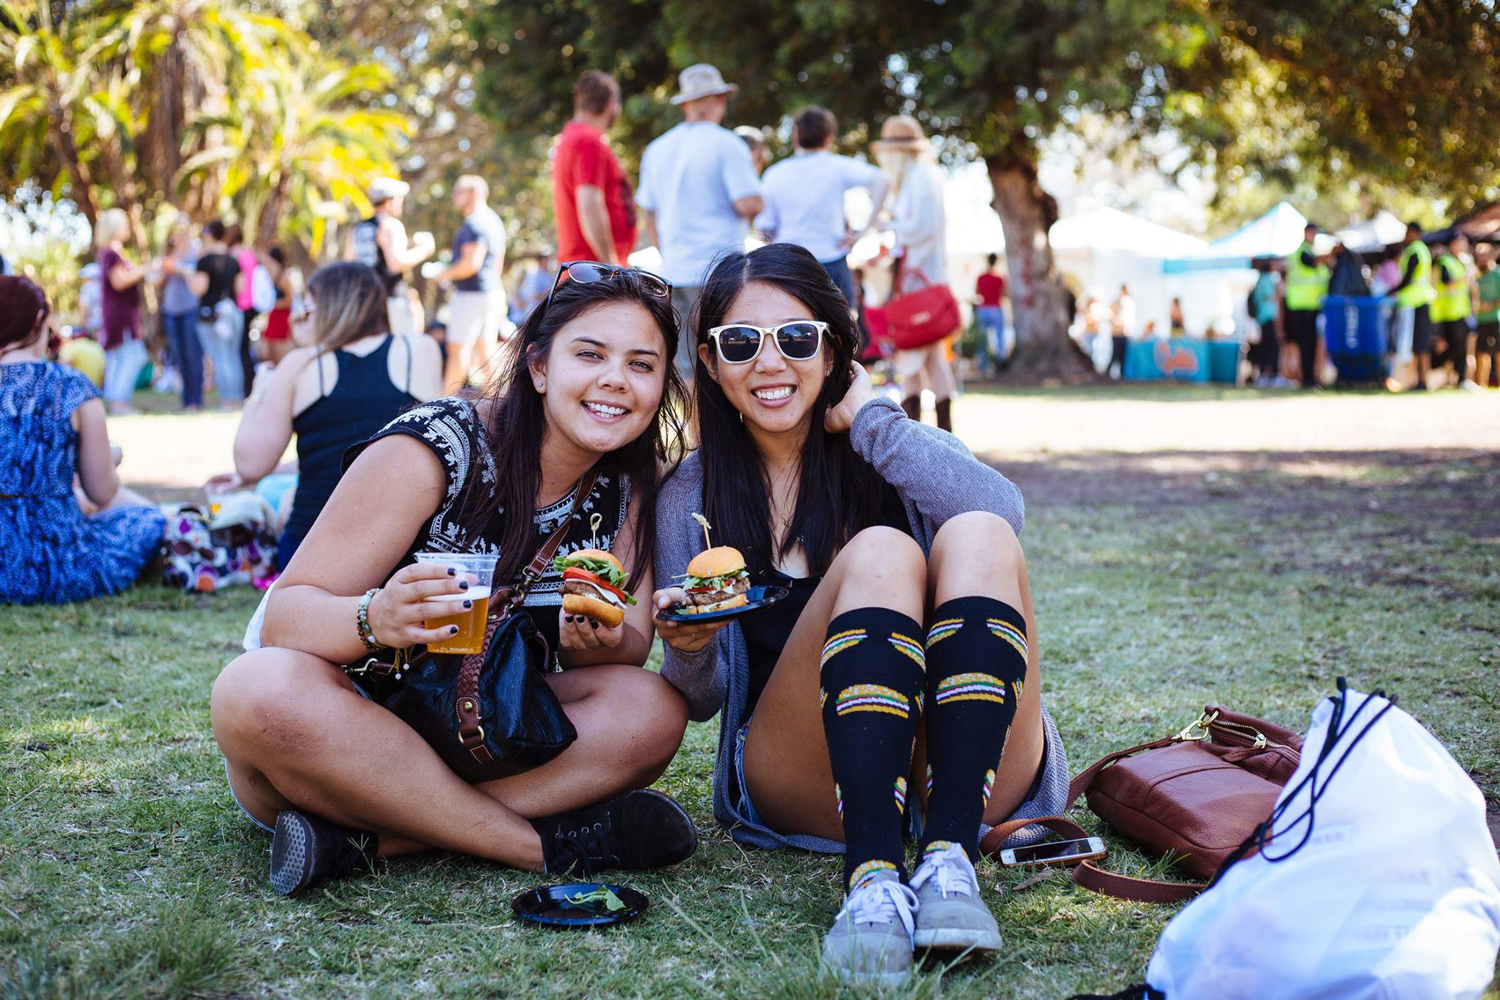 Burgers-and-Beer-Best-Of-Photos-for-Web-(21-of-25).jpg